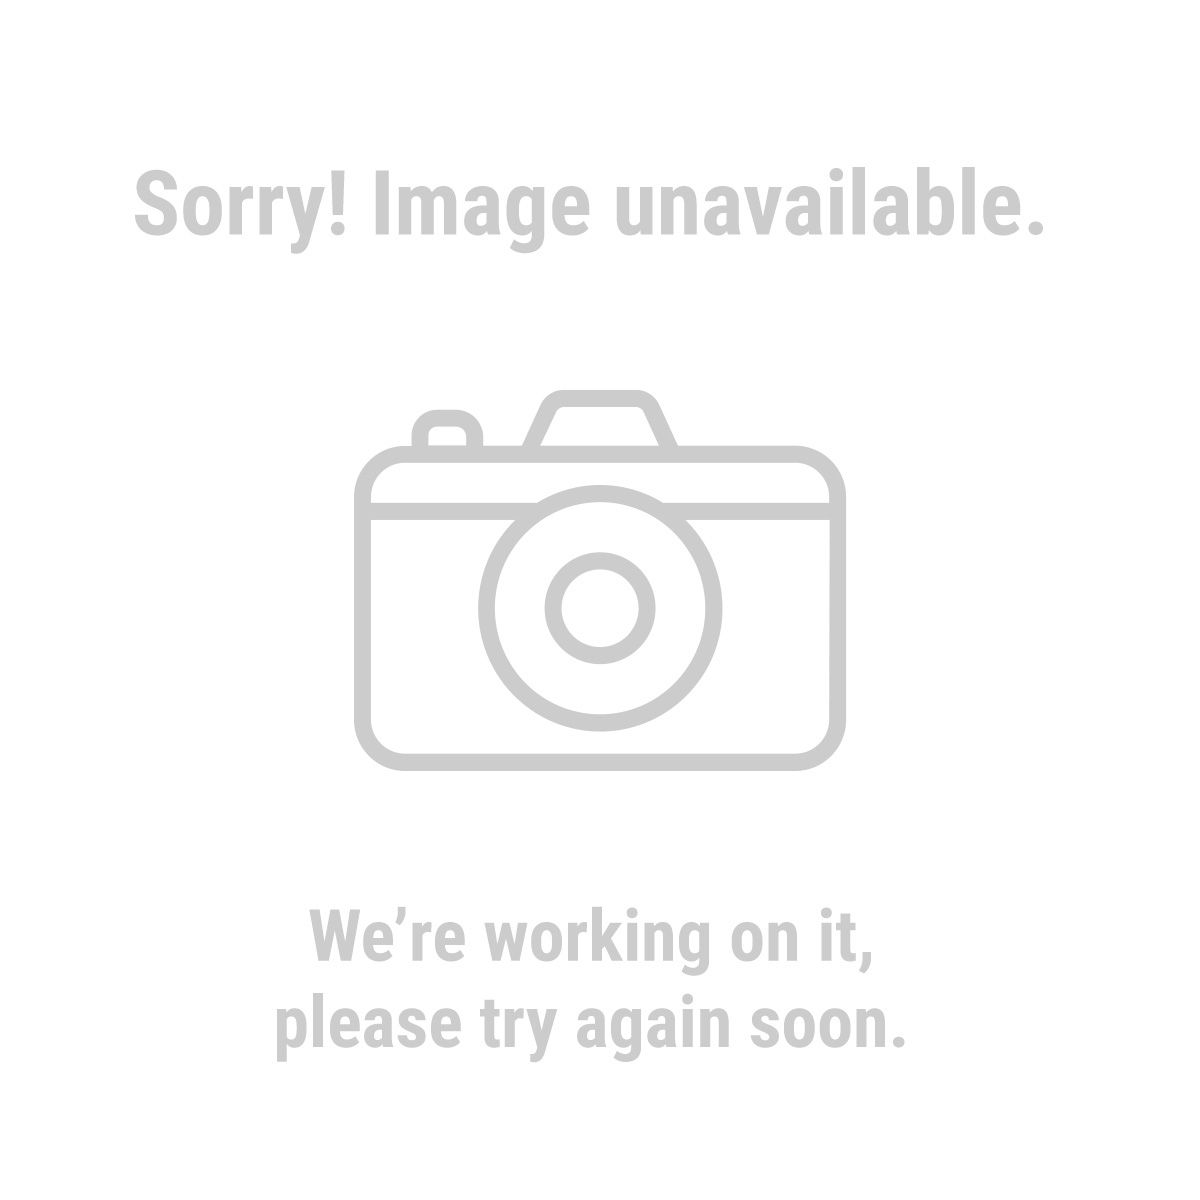 Furniture Sliders - Save on these Magic Mover Sliders